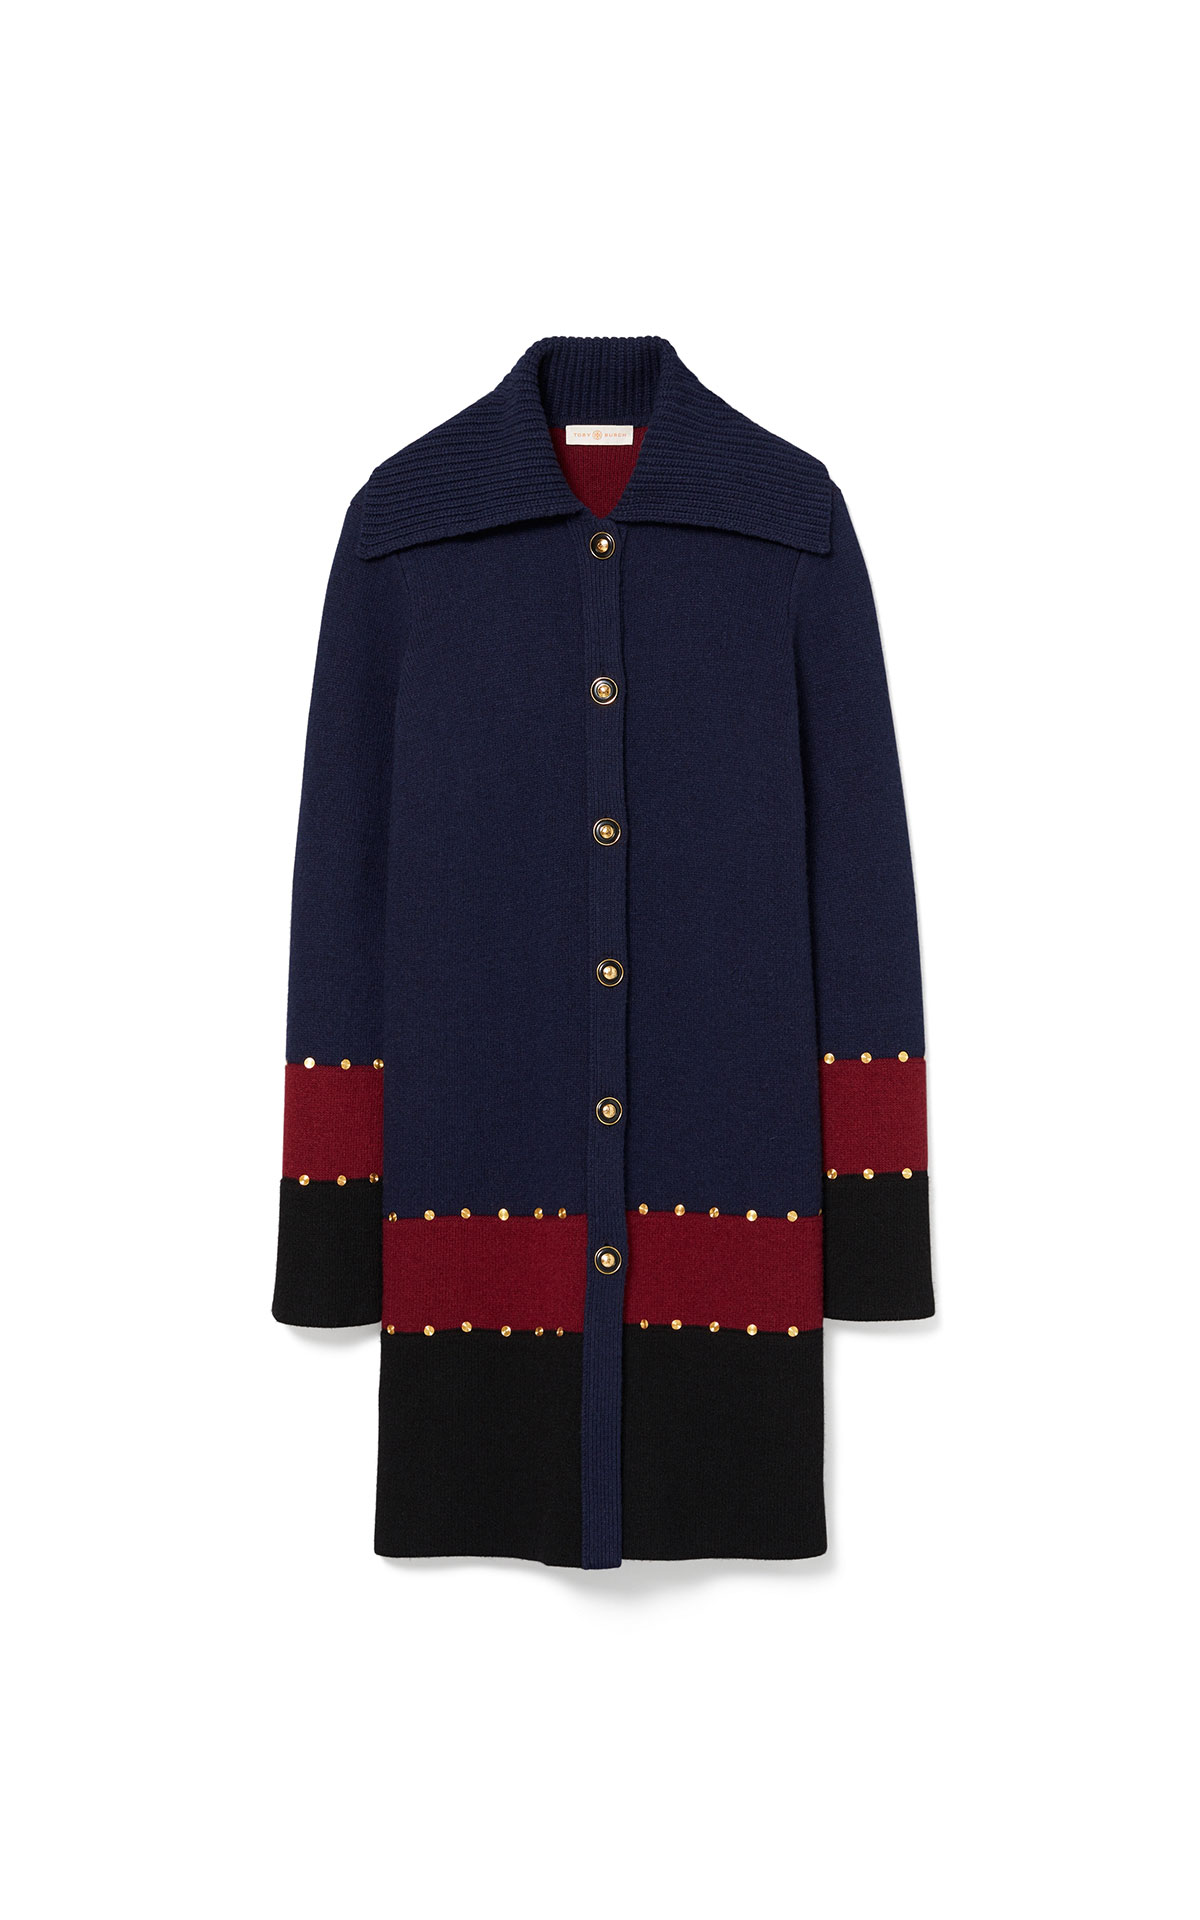 Tory Burch Stud sweater coat from Bicester Village